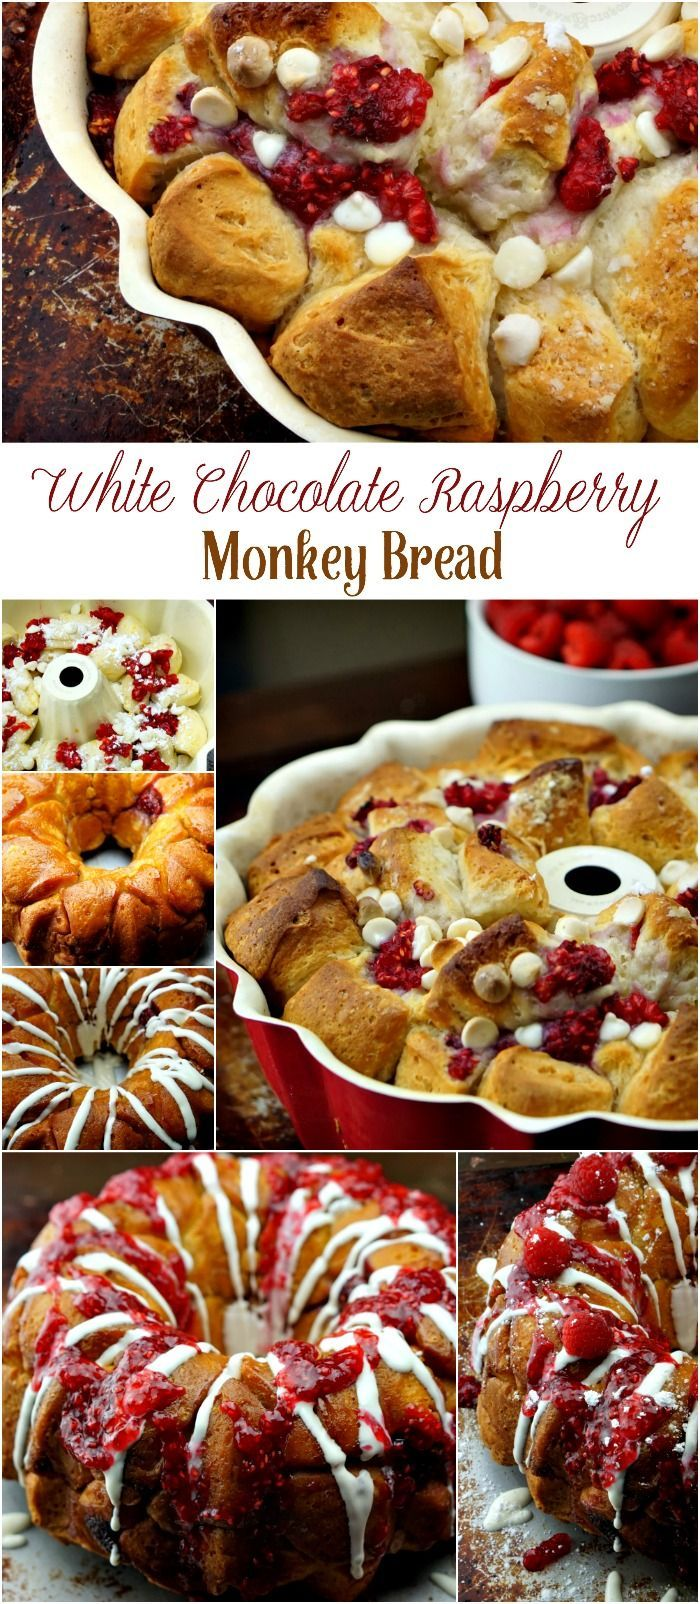 White chocolate raspberry monkey bread recipe